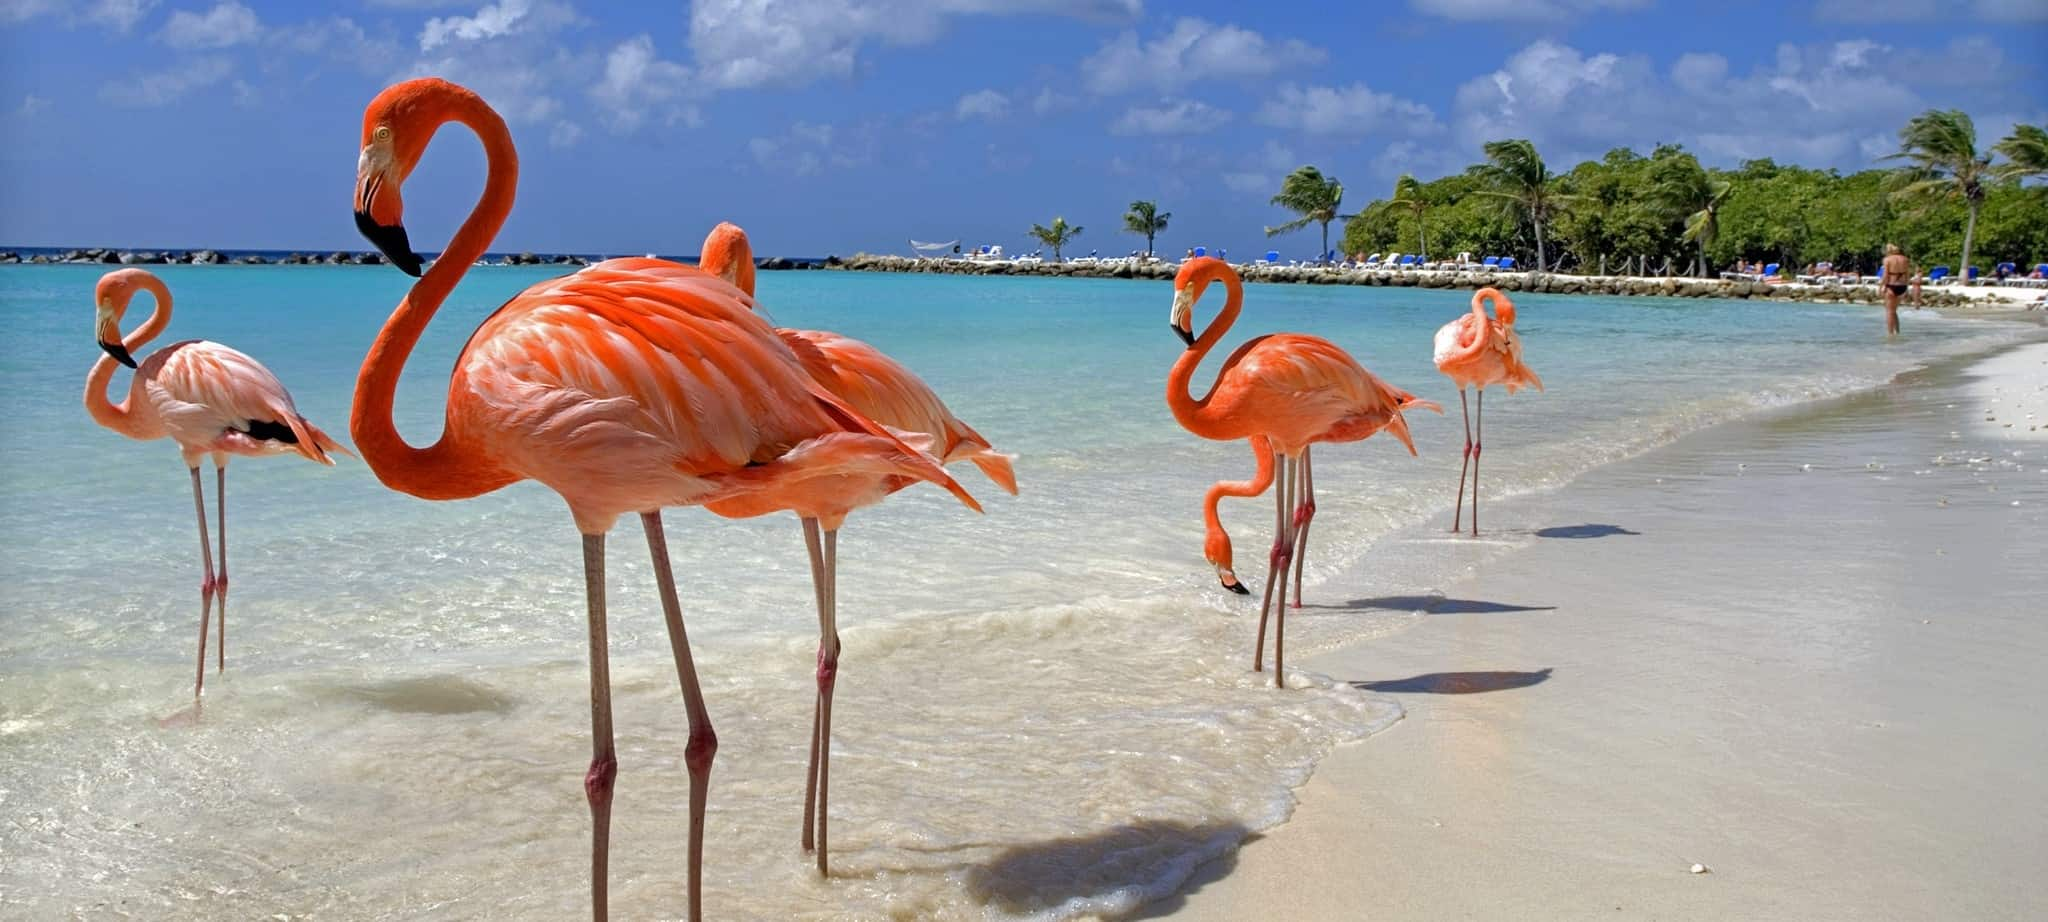 Flamingo Beach, Aruba